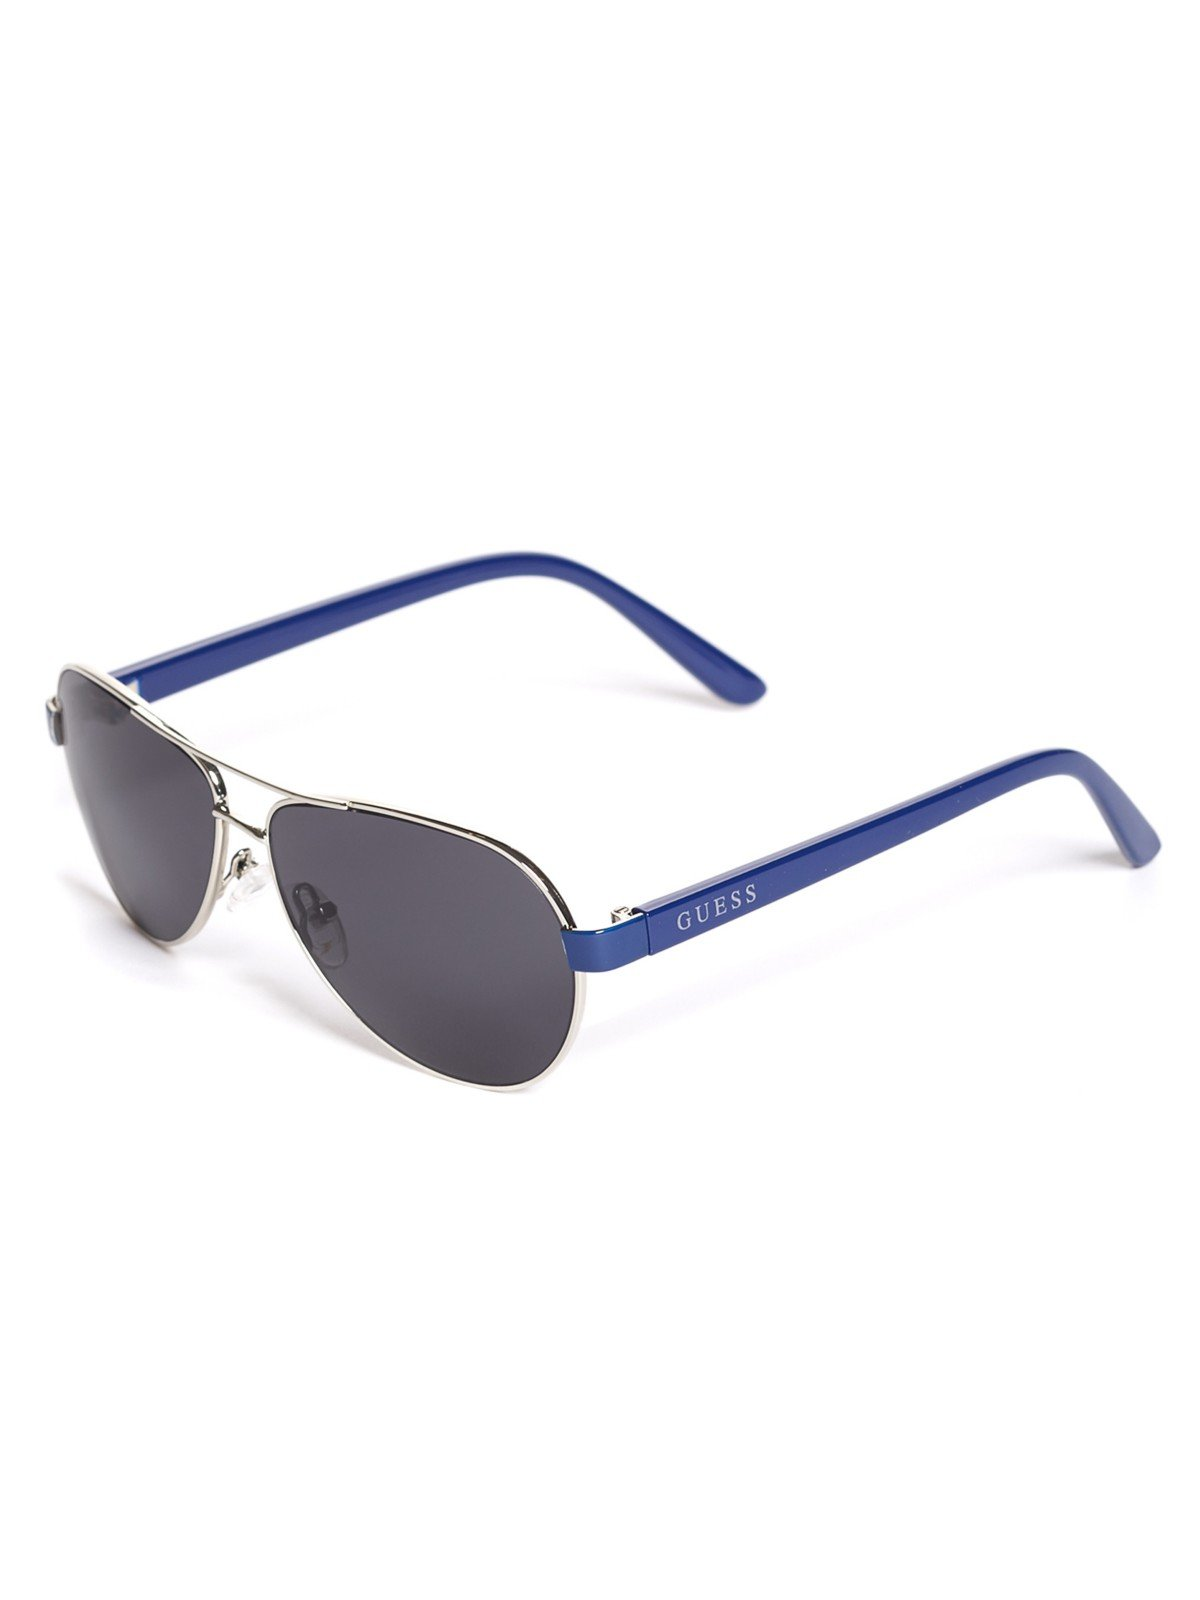 GUESS Factory Boy's Tinted Aviator Sunglasses